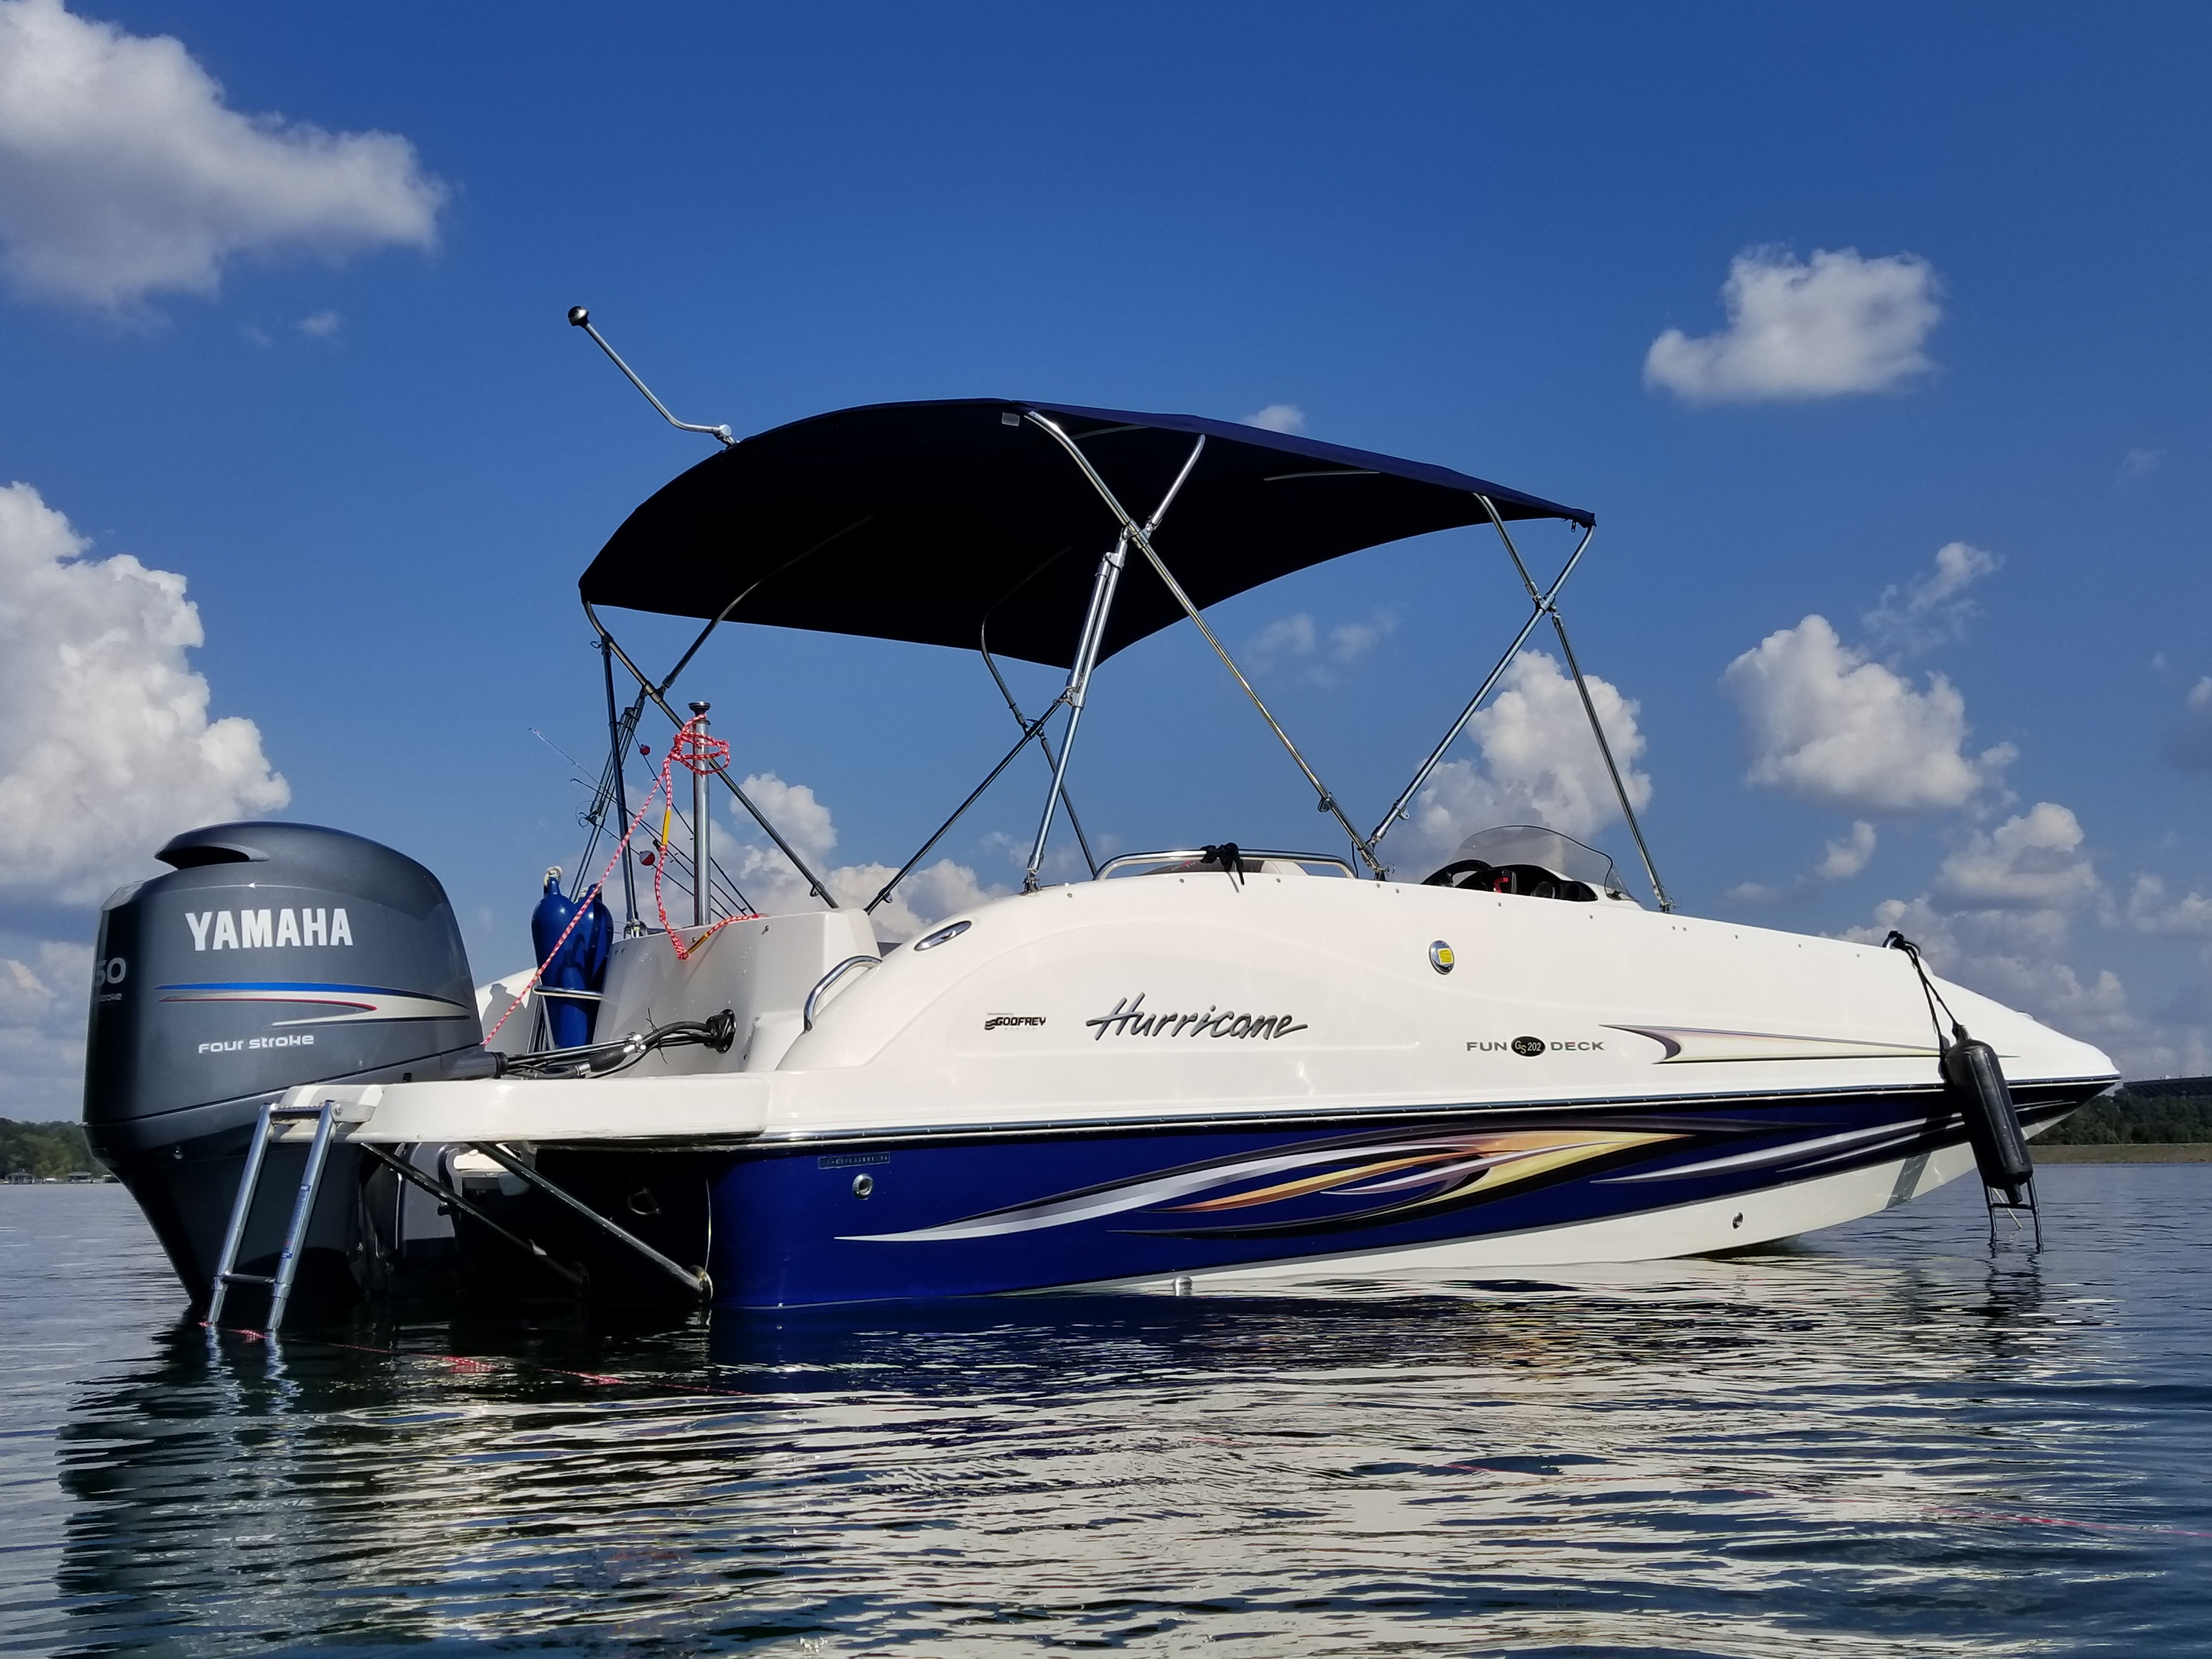 1999 Hurricane Fundeck 226 Sold 2008 GS202 Current